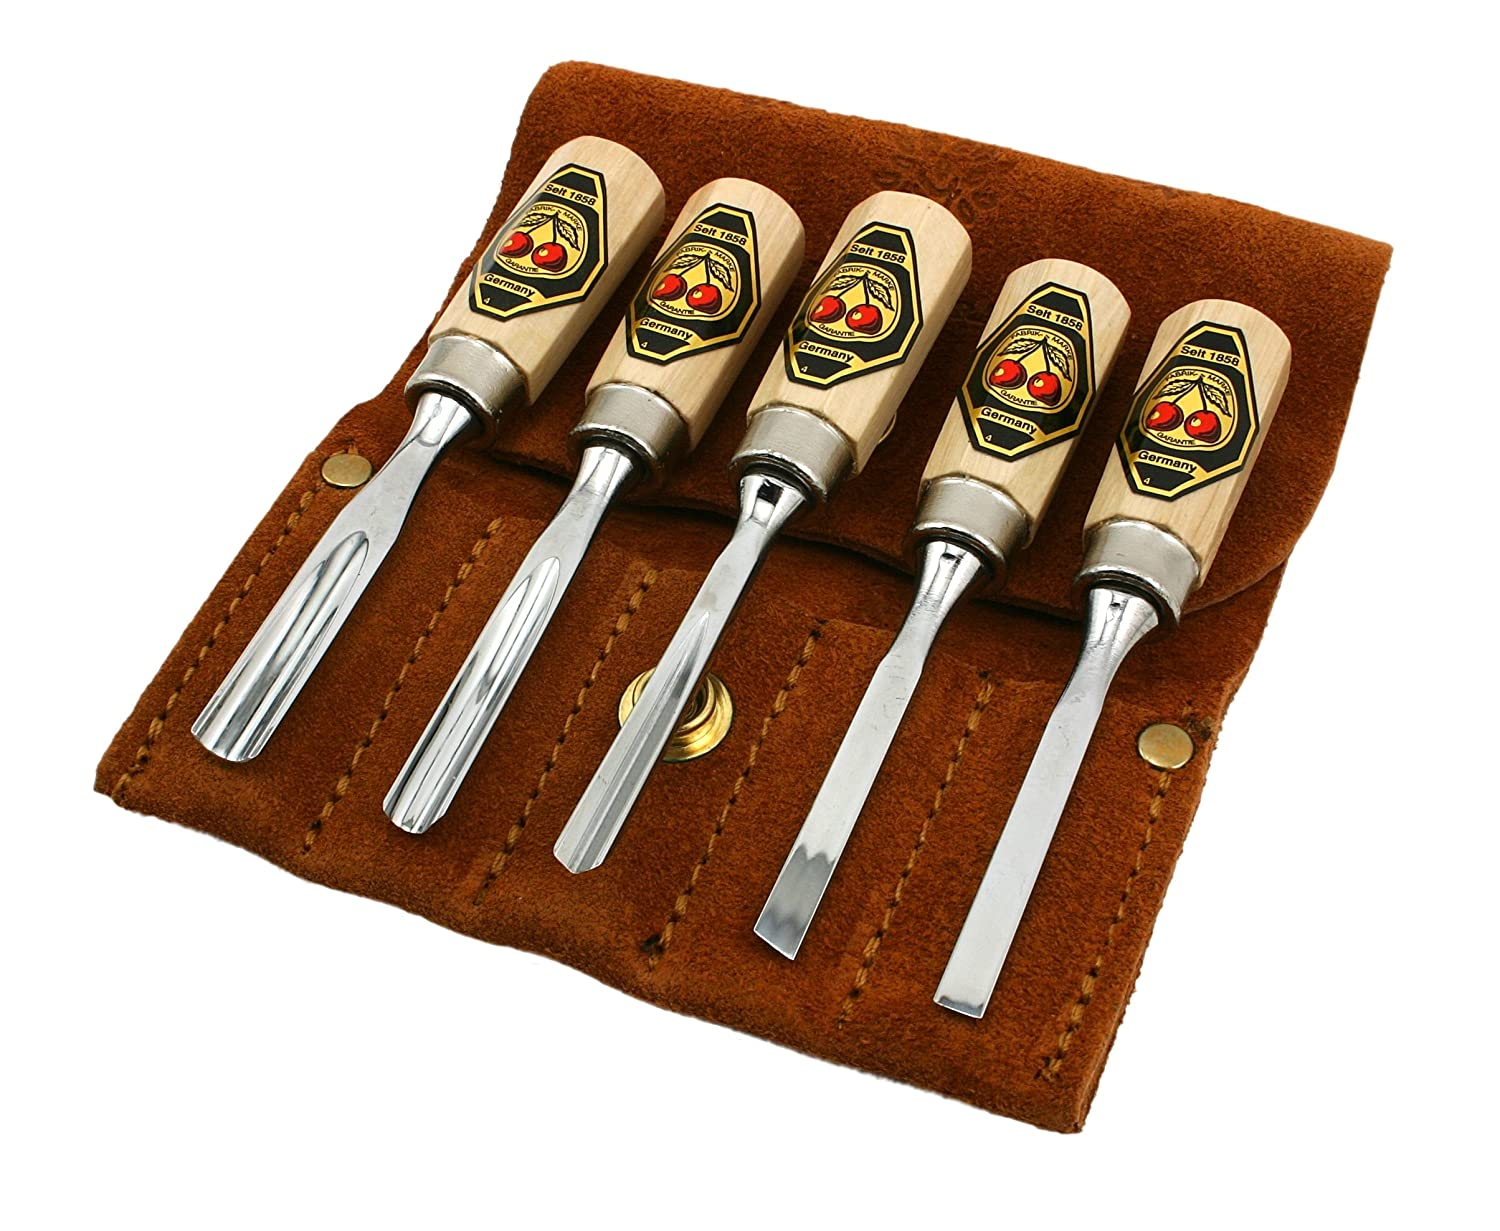 Two Cherries 515-8575 5-Piece Small Wood Carving Tool Set with Leather Pouch Robert Larson Co